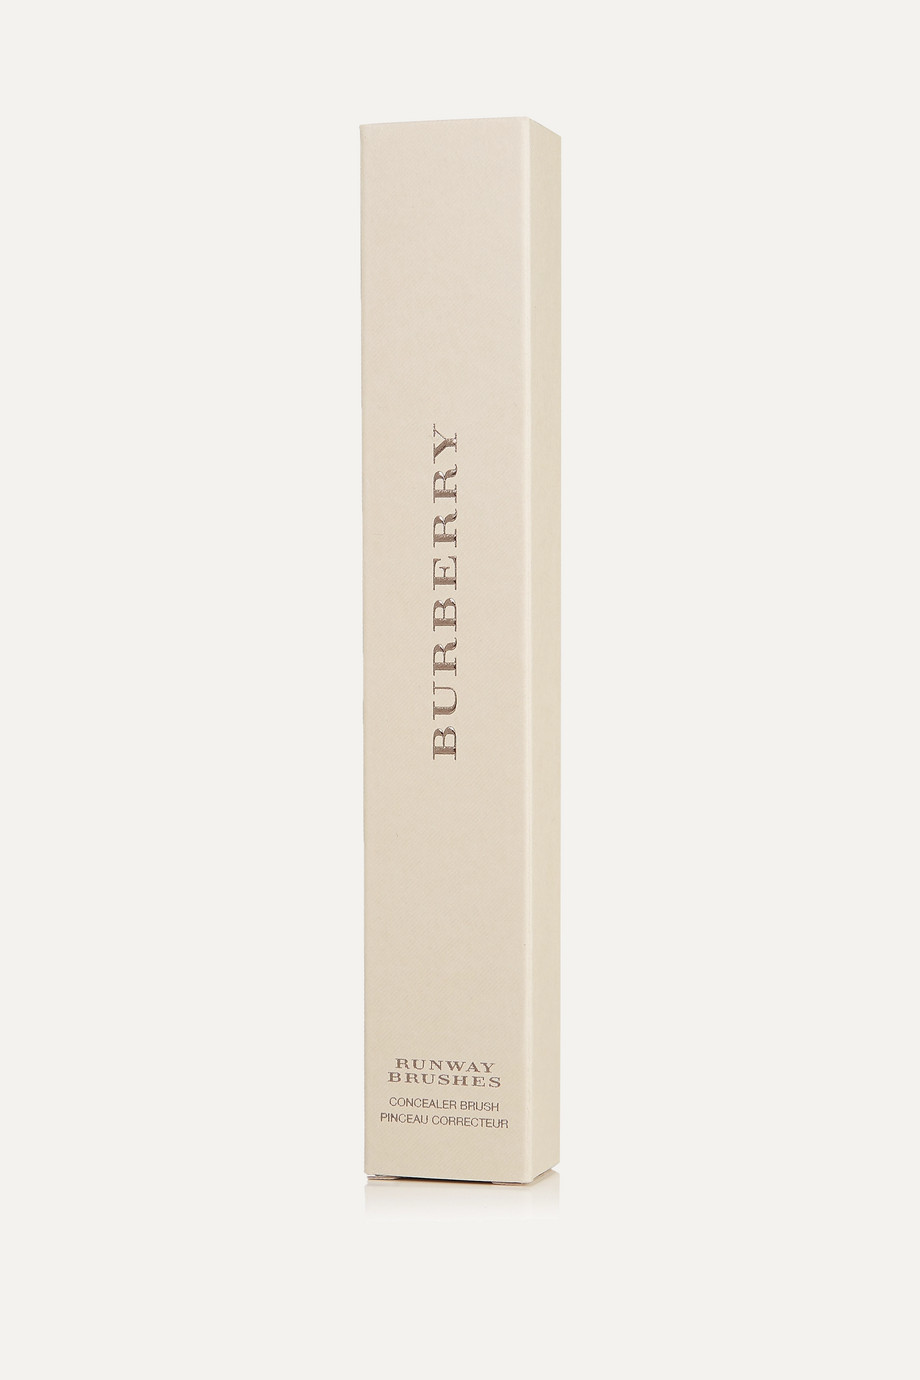 BURBERRY BEAUTY Concealer Brush - No.06